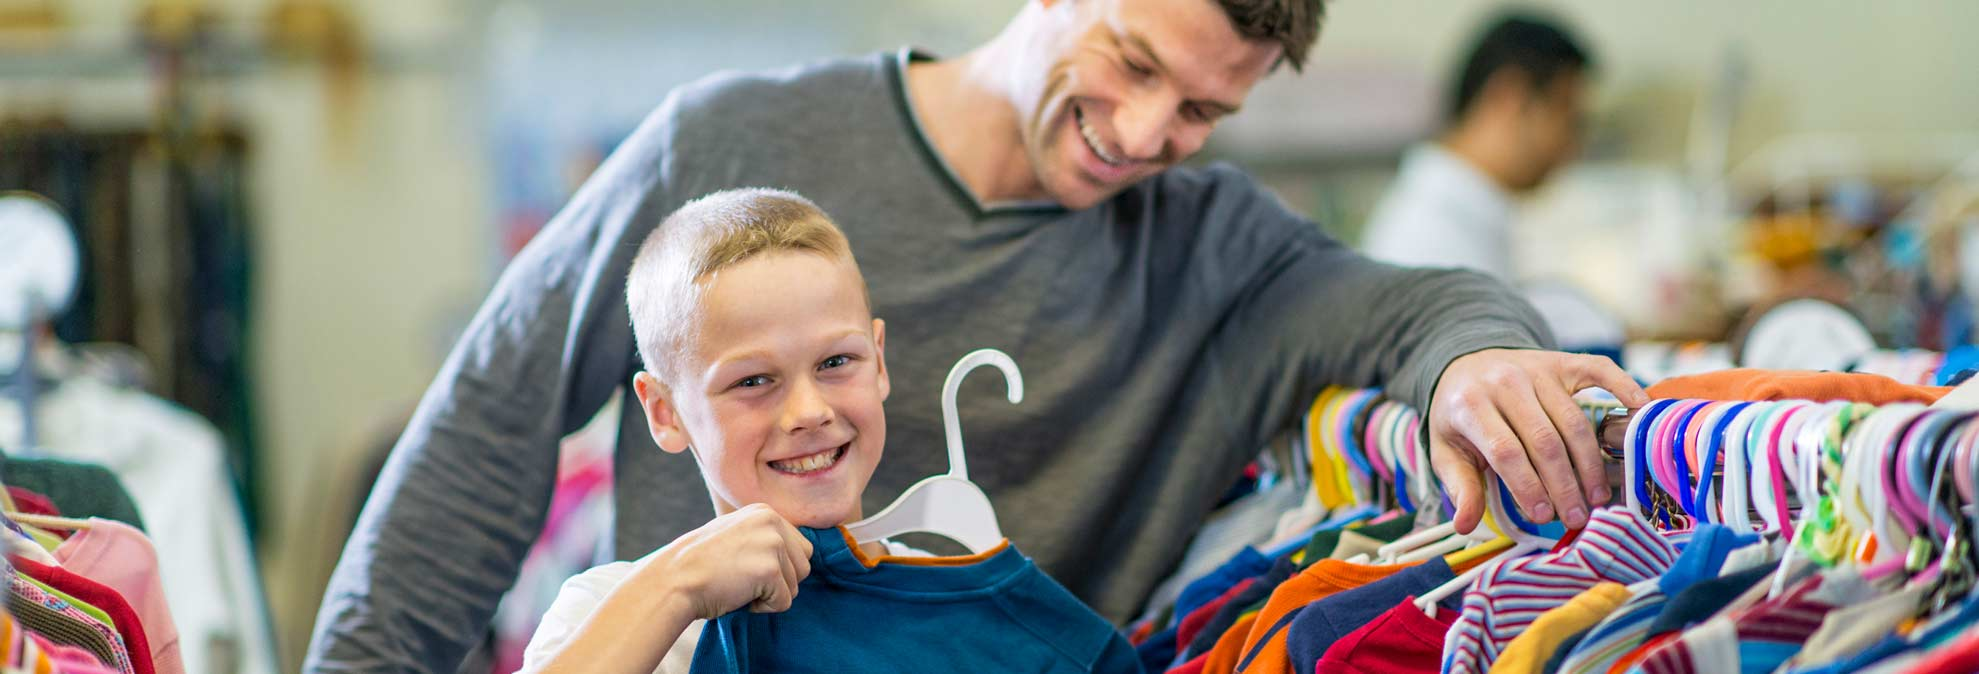 Save Money on Back-to-School Shopping for Clothes